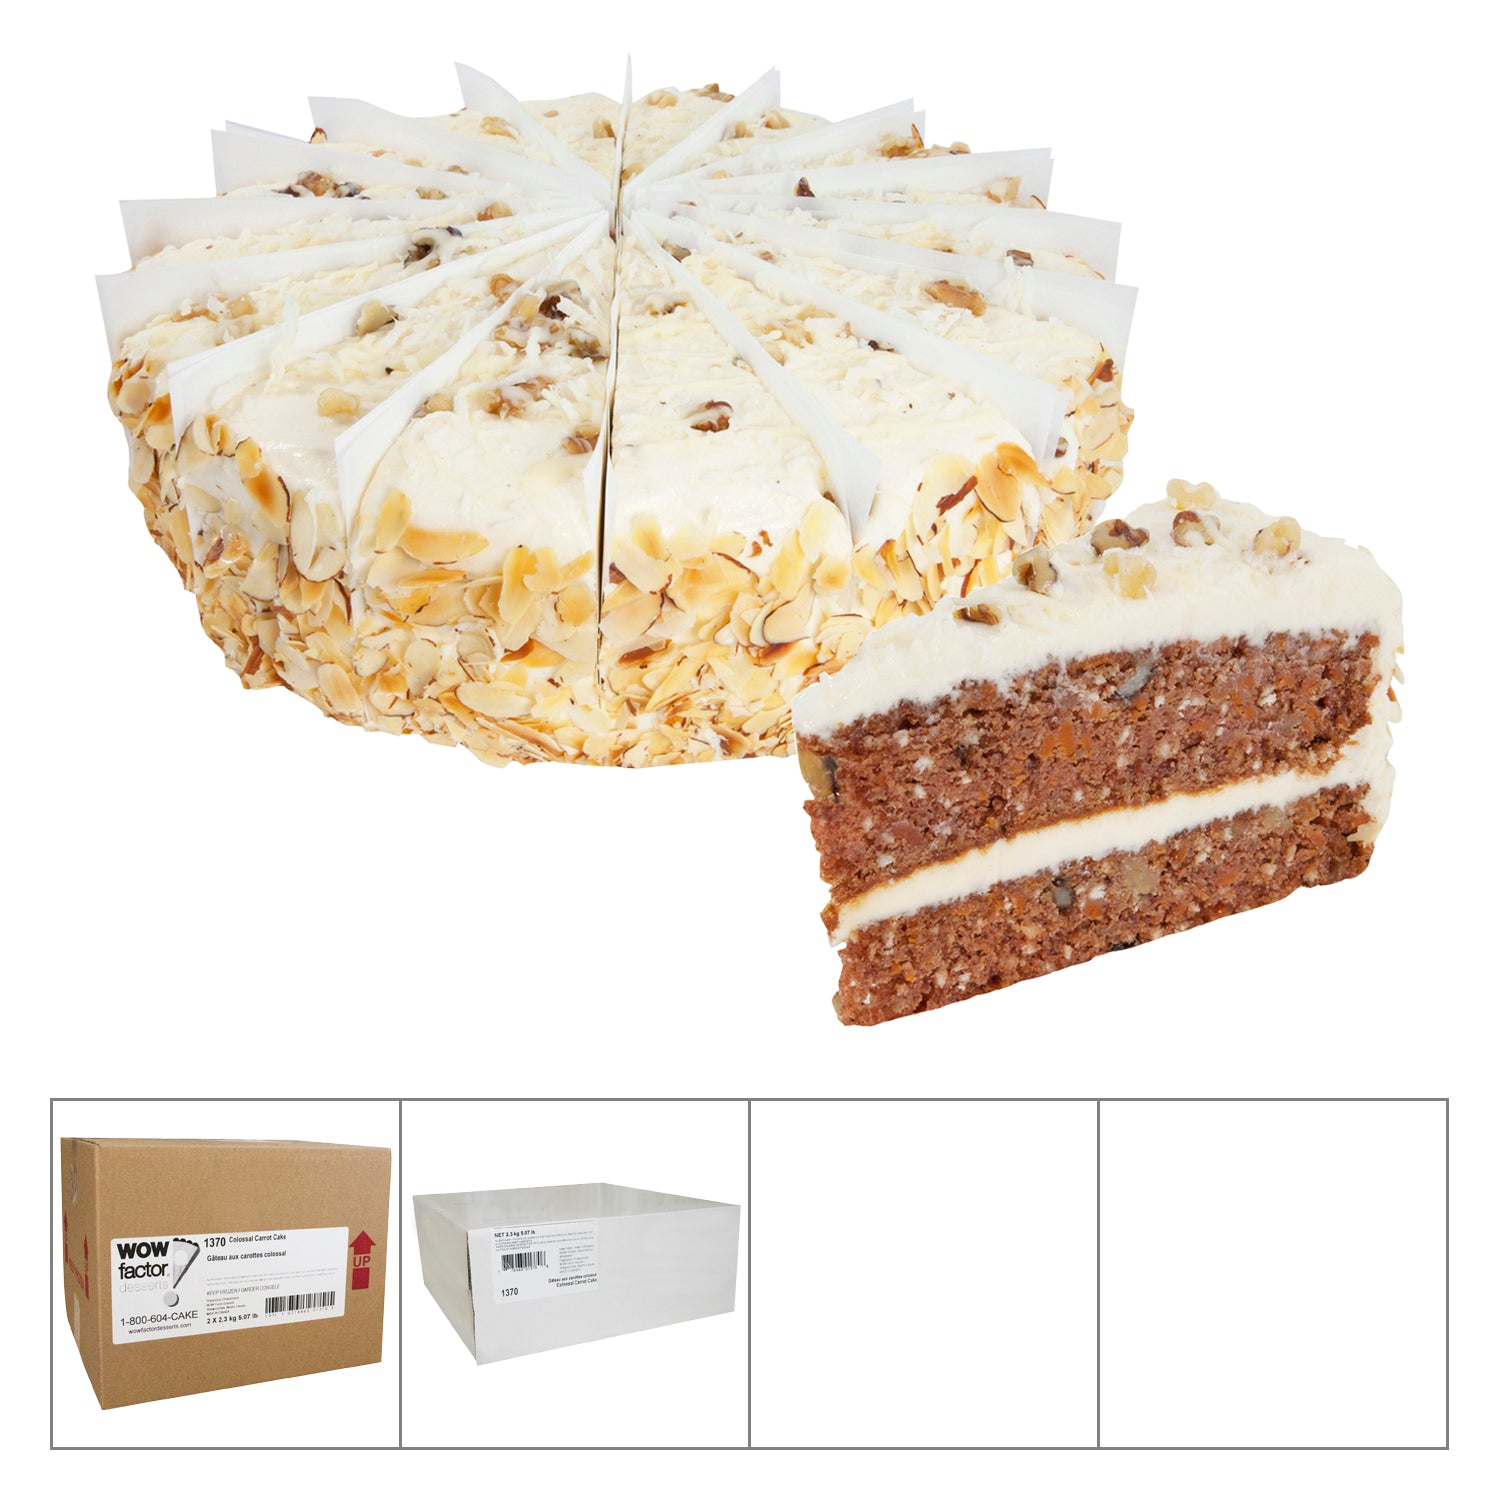 "WOW Factor Frozen Colossal Carrot Cake 10"""" - 2 Pack [$45.00/each]"